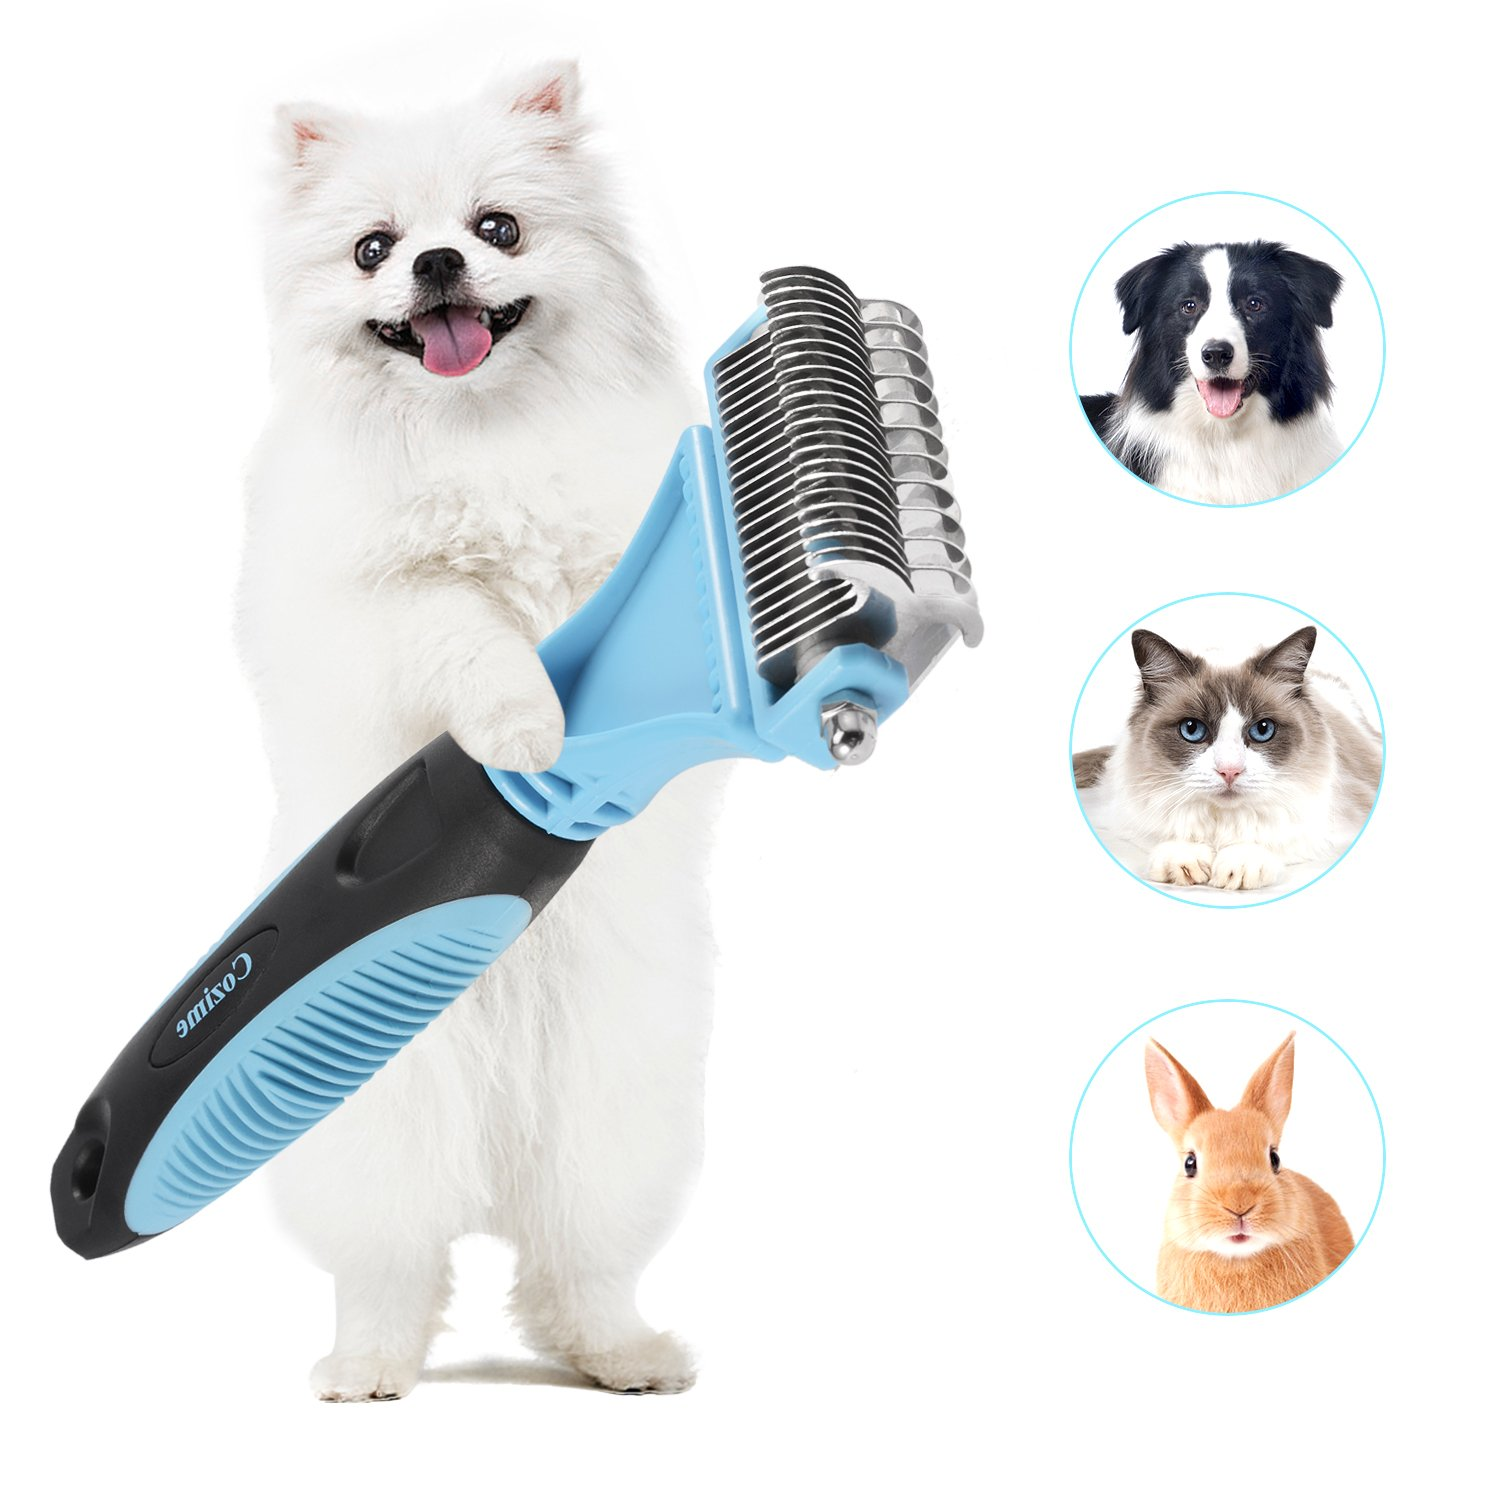 Double Sided Pet Dematting Comb with 35 Blades, Dog Undercoat Rake for Removing Mats & Tangles, Pet Grooming Brush Tool for Small, Medium and Large Breed